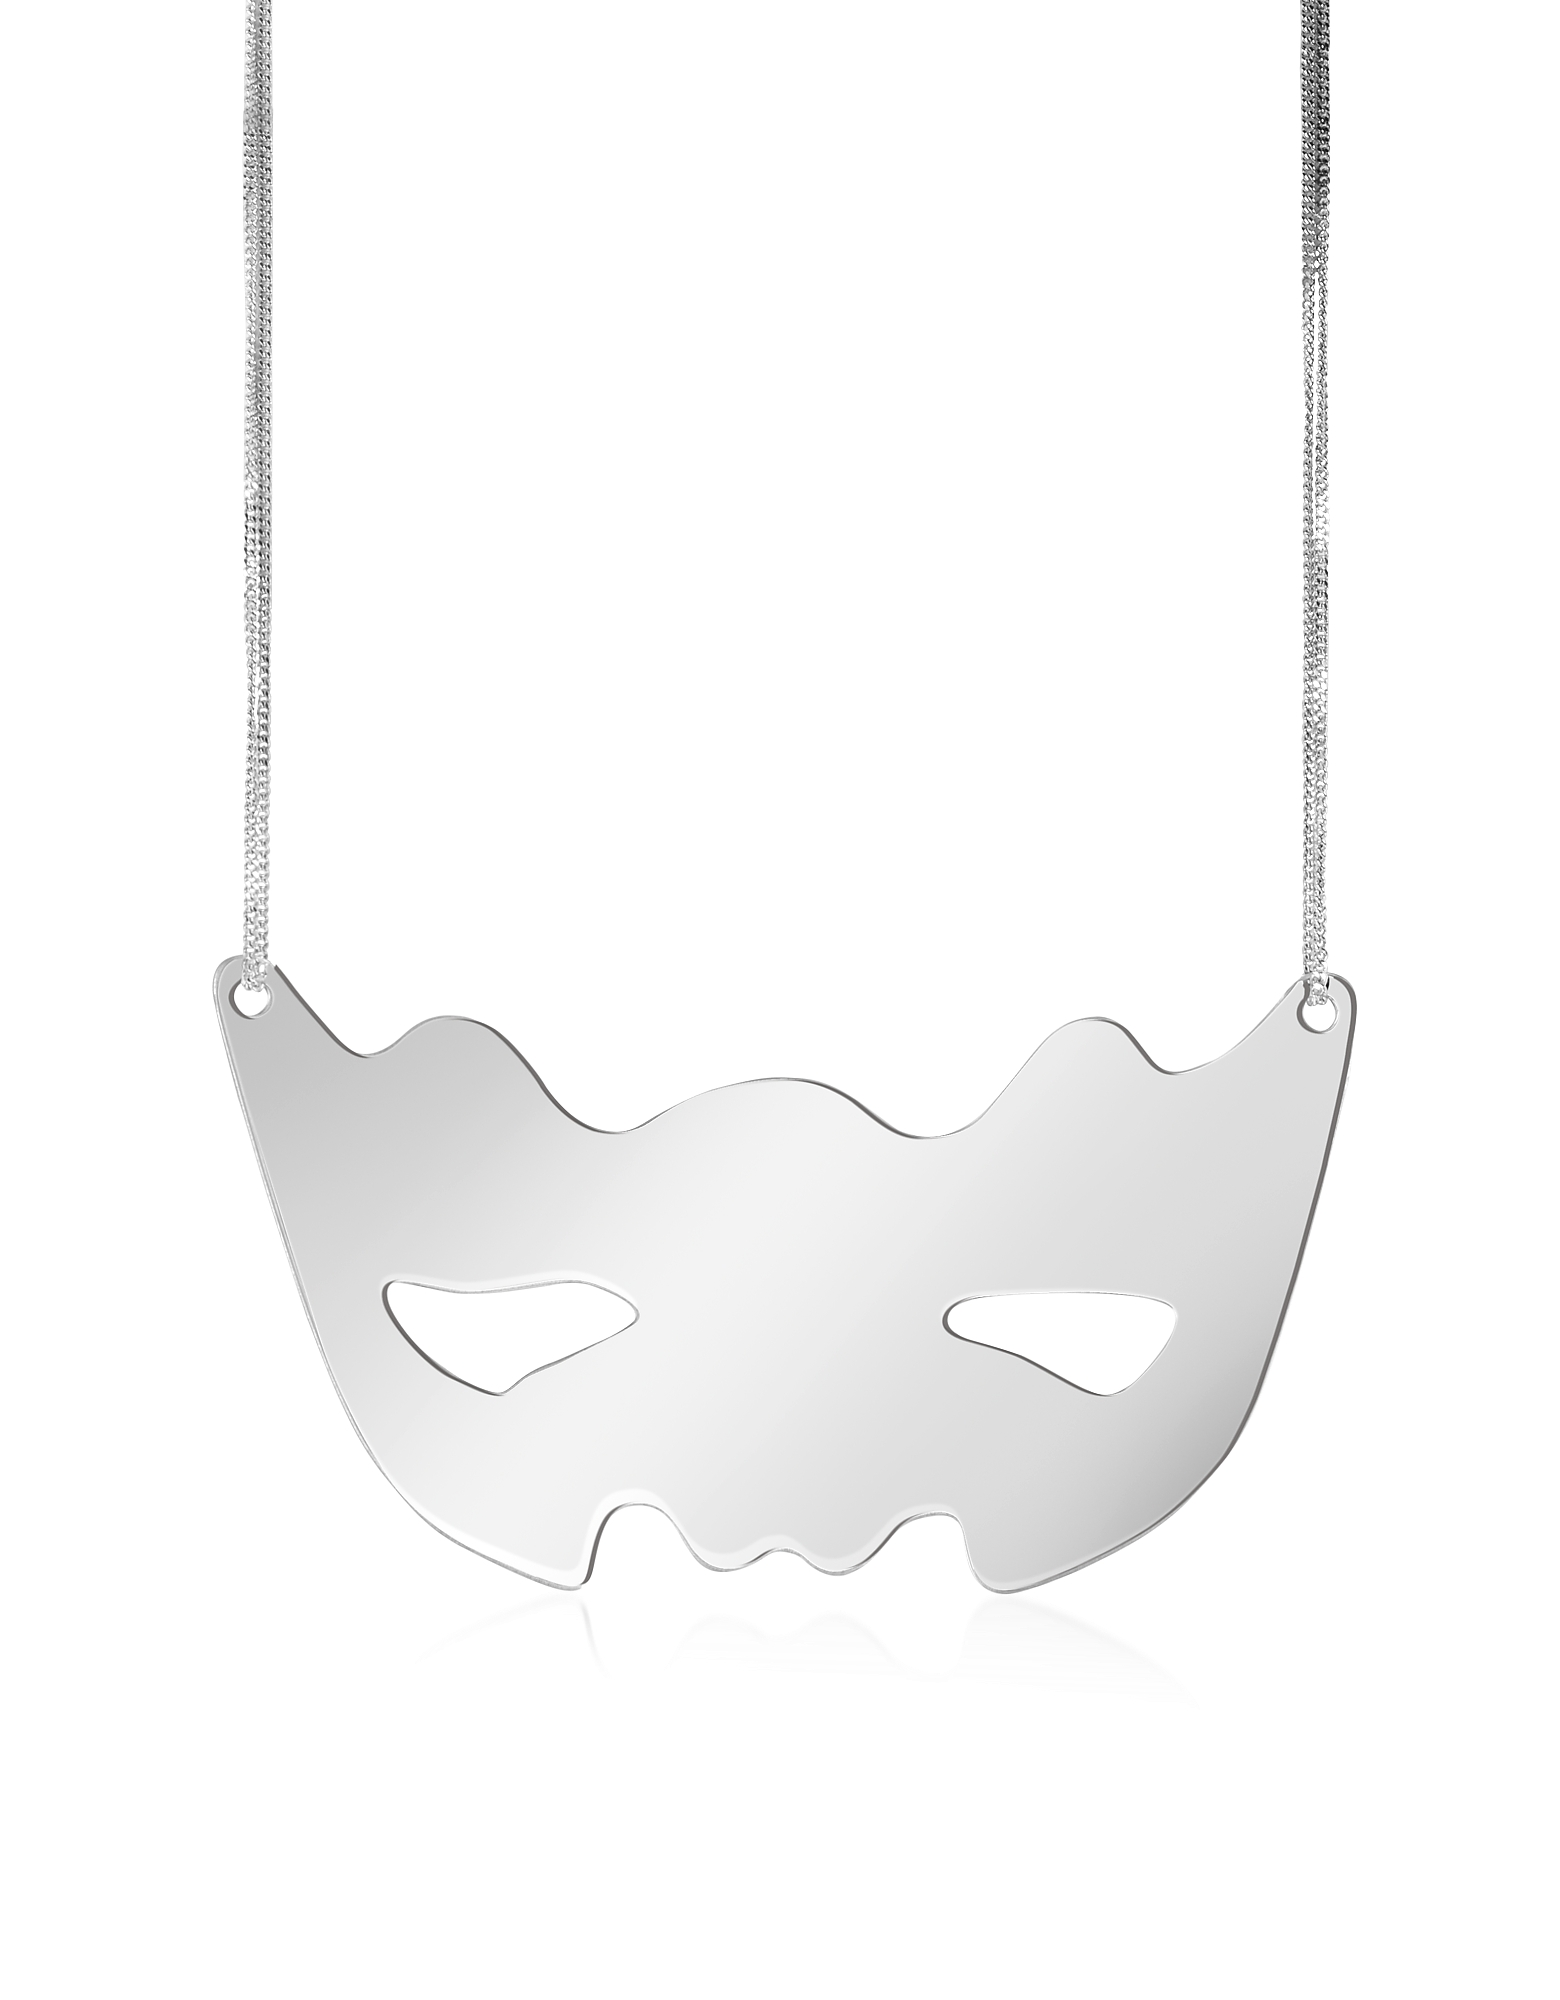 MM6 Maison Martin Margiela Necklaces, Mirror Mask Necklace